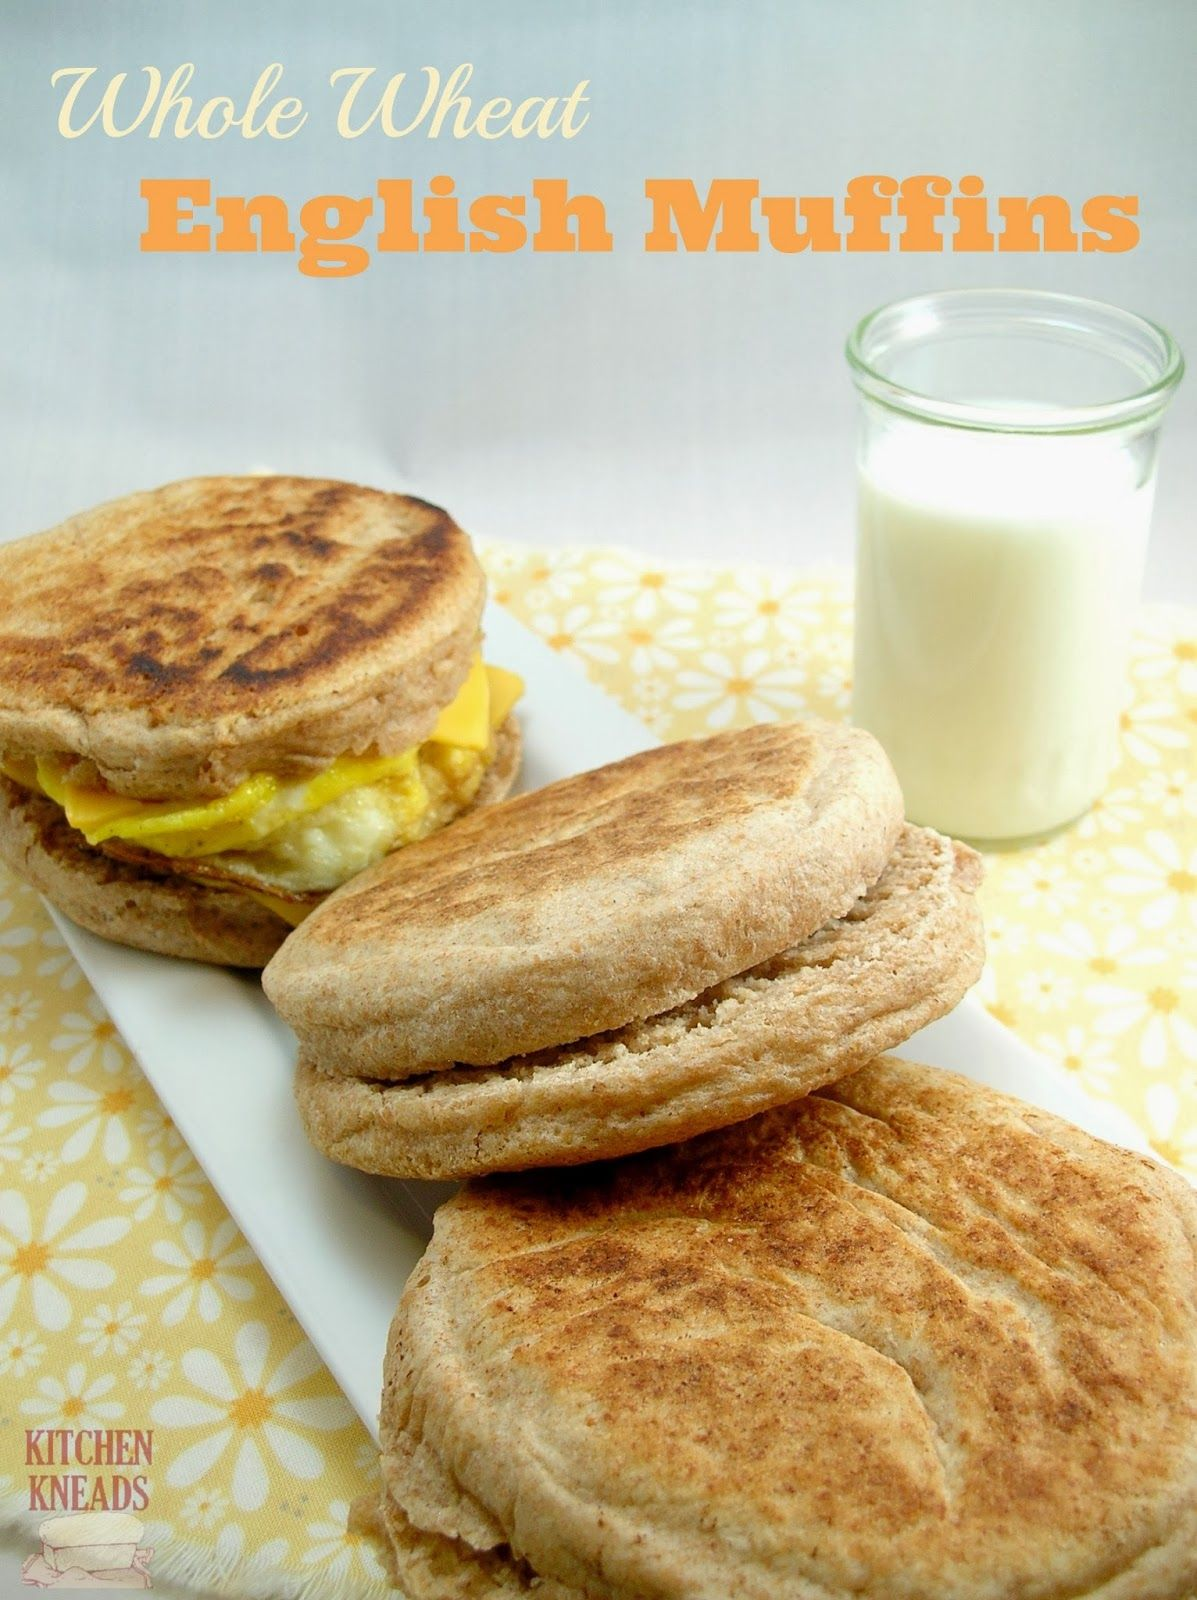 Whole Wheat English Muffins Whole Wheat English Muffin Real